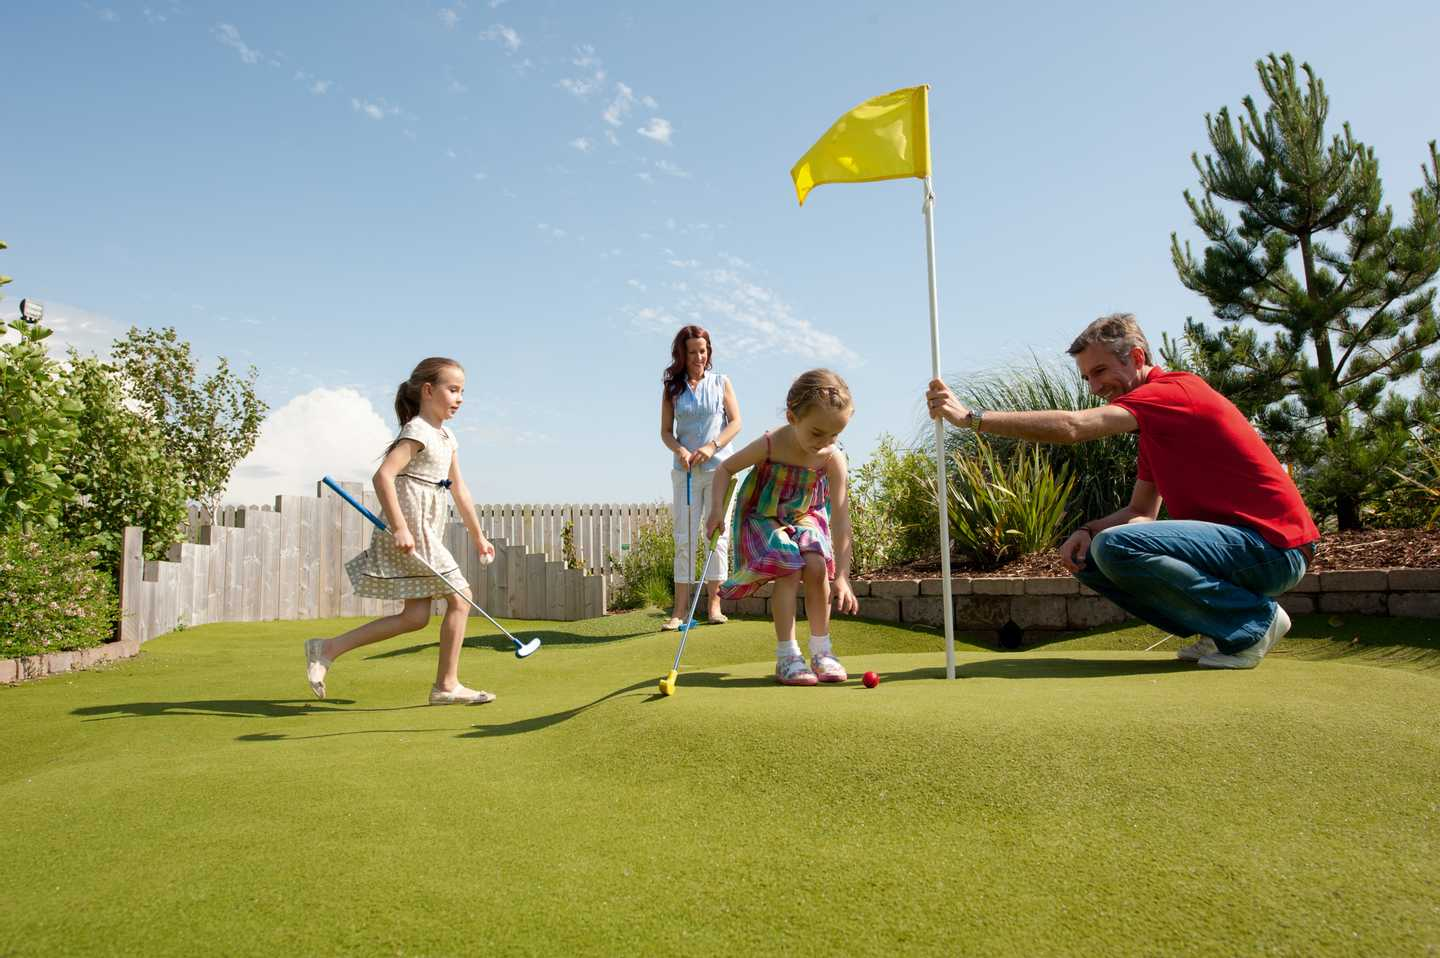 A family playing Adventure golf